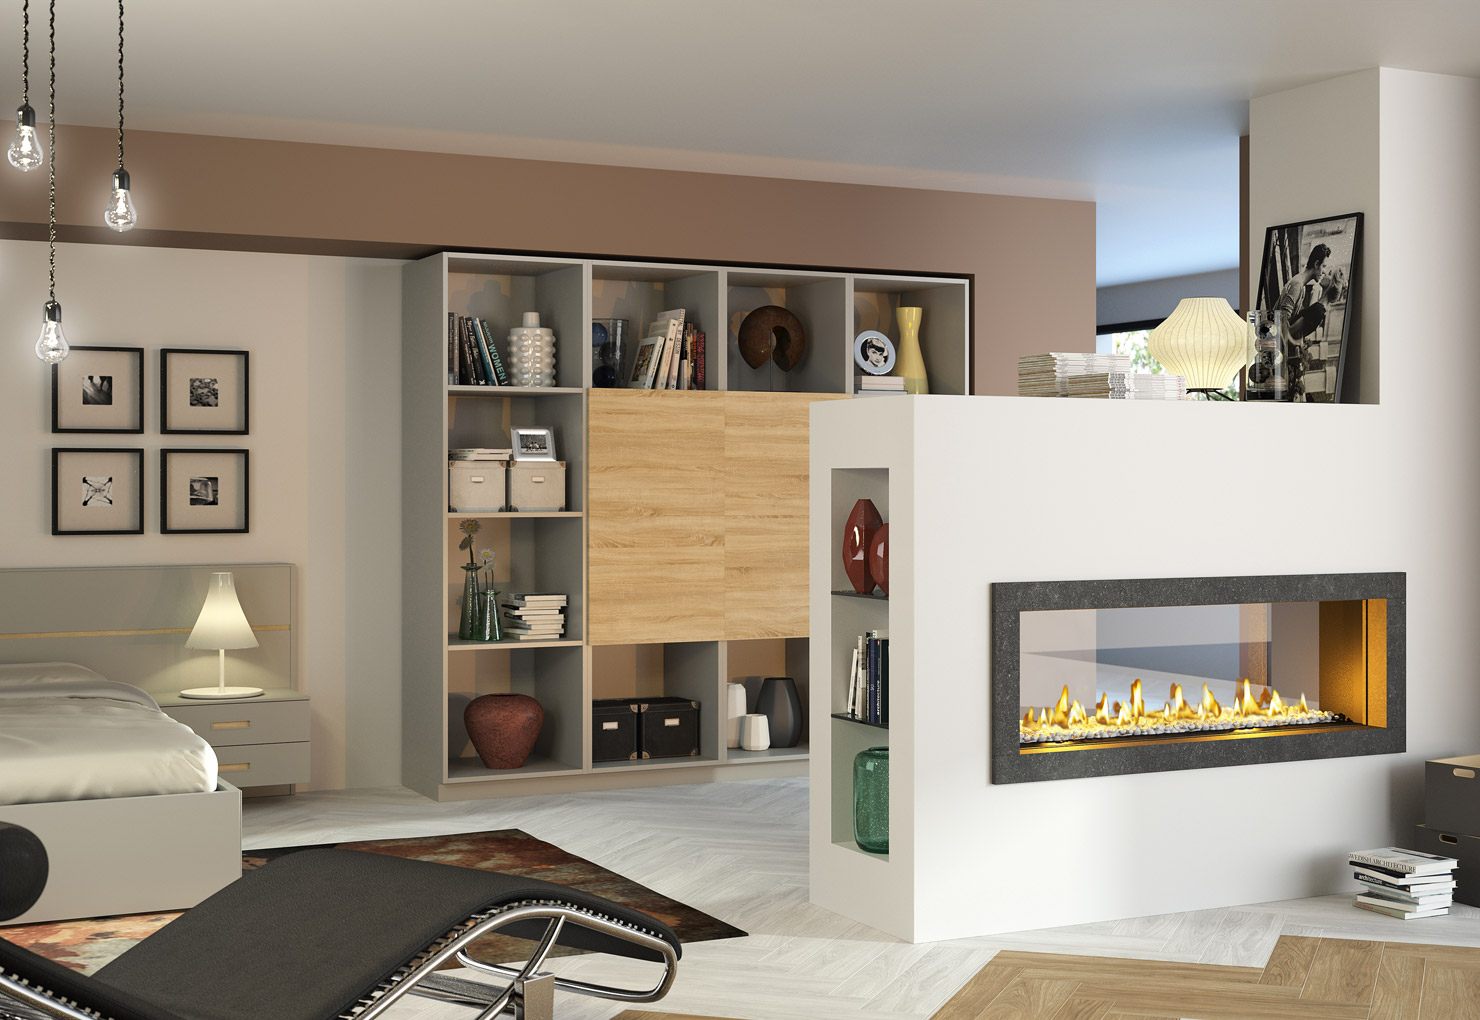 chemin es gaz et bois chemin es philippe sarlat. Black Bedroom Furniture Sets. Home Design Ideas